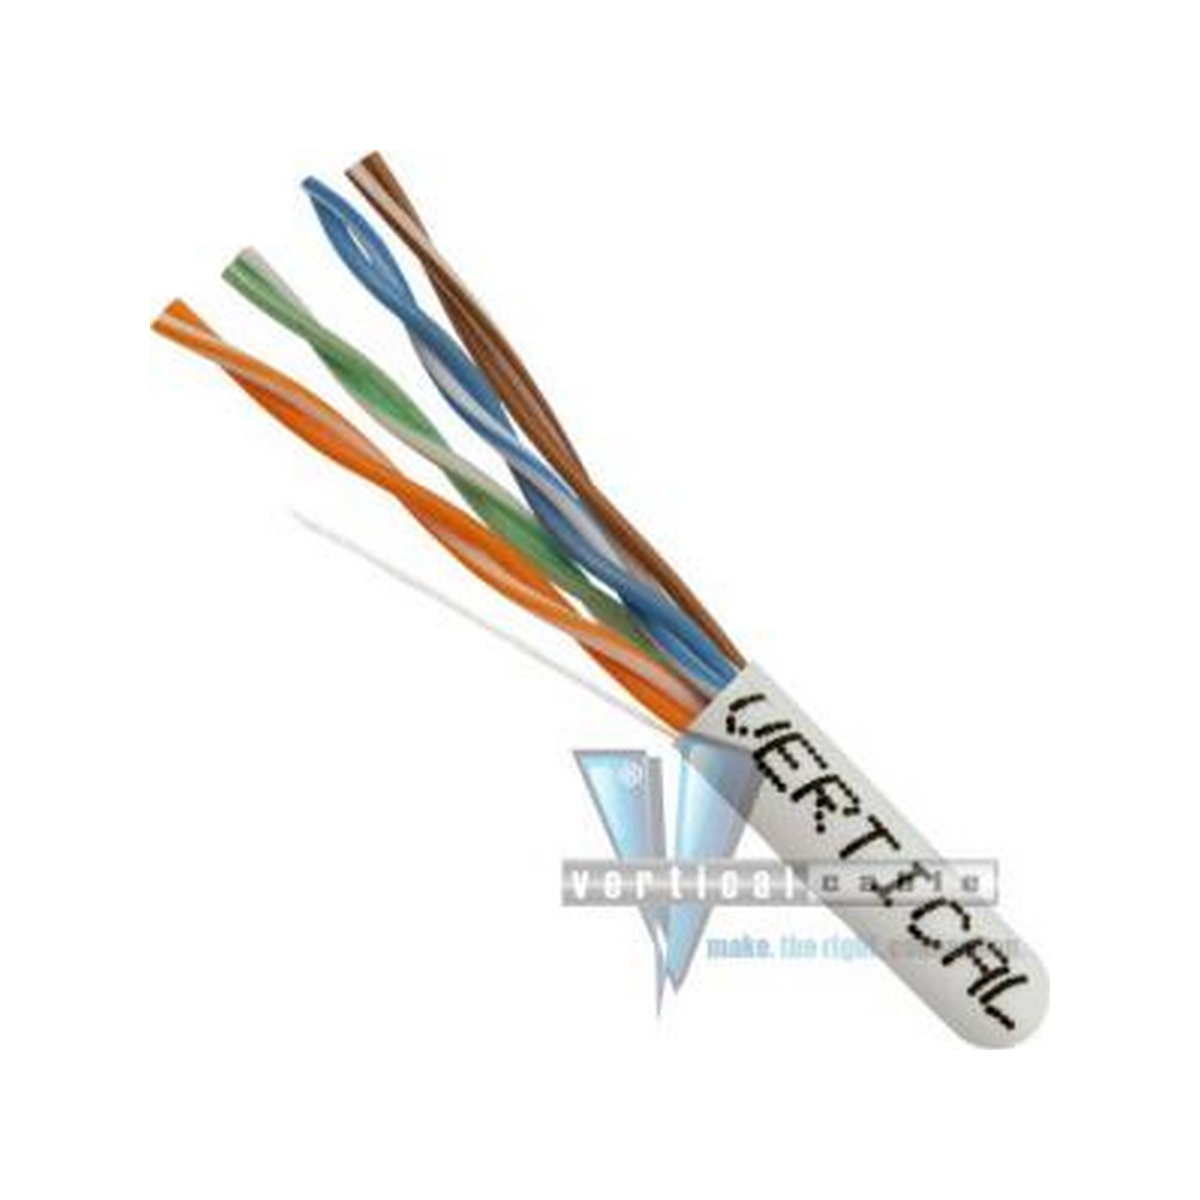 Vertical CAT6 UTP PLENUM 23 AWG TEST TO 550 MHZ 1000FT  WHITE  SPLINELESS PULL BOX  UL TAA COMPLIANT